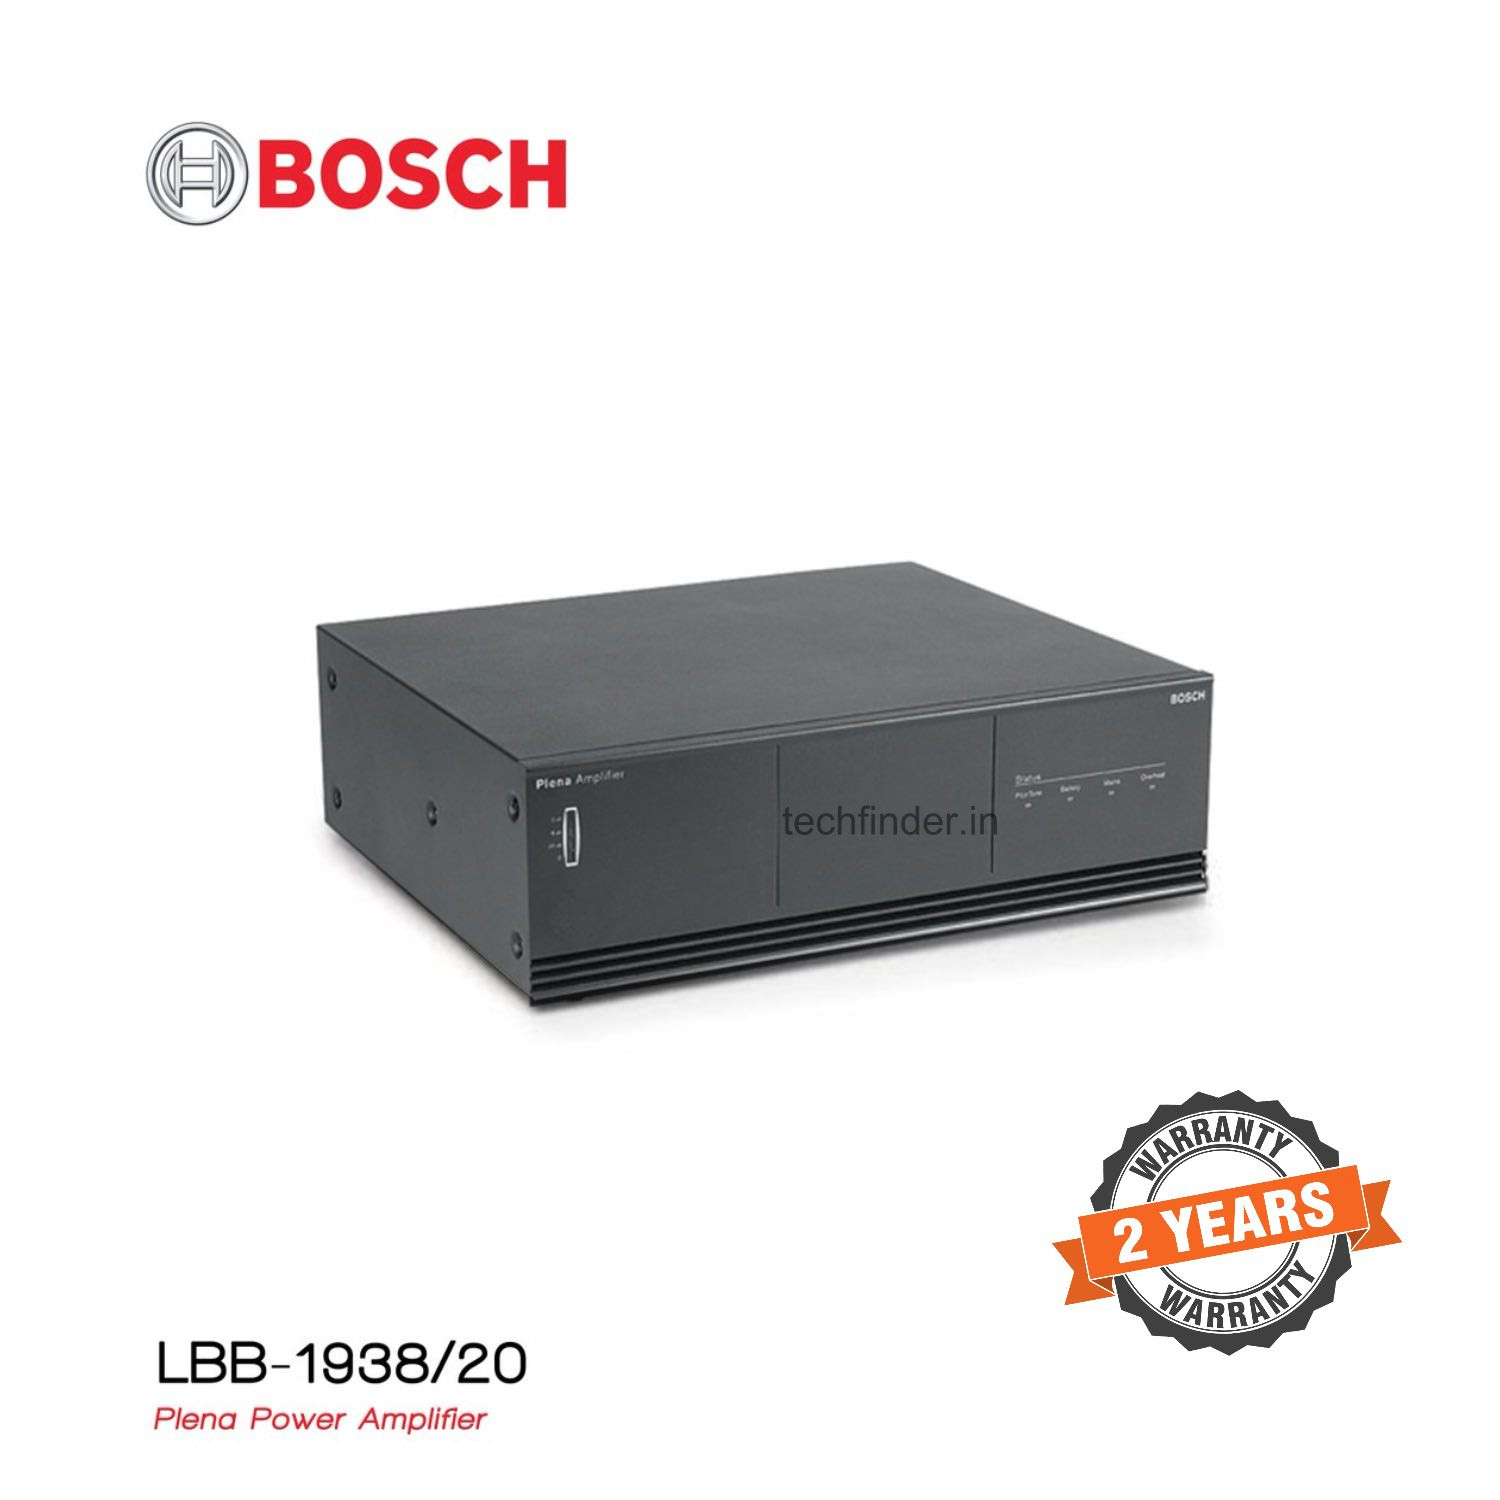 Bosch LBB 1938/20 Plena 480watt Power Audio Amplifier